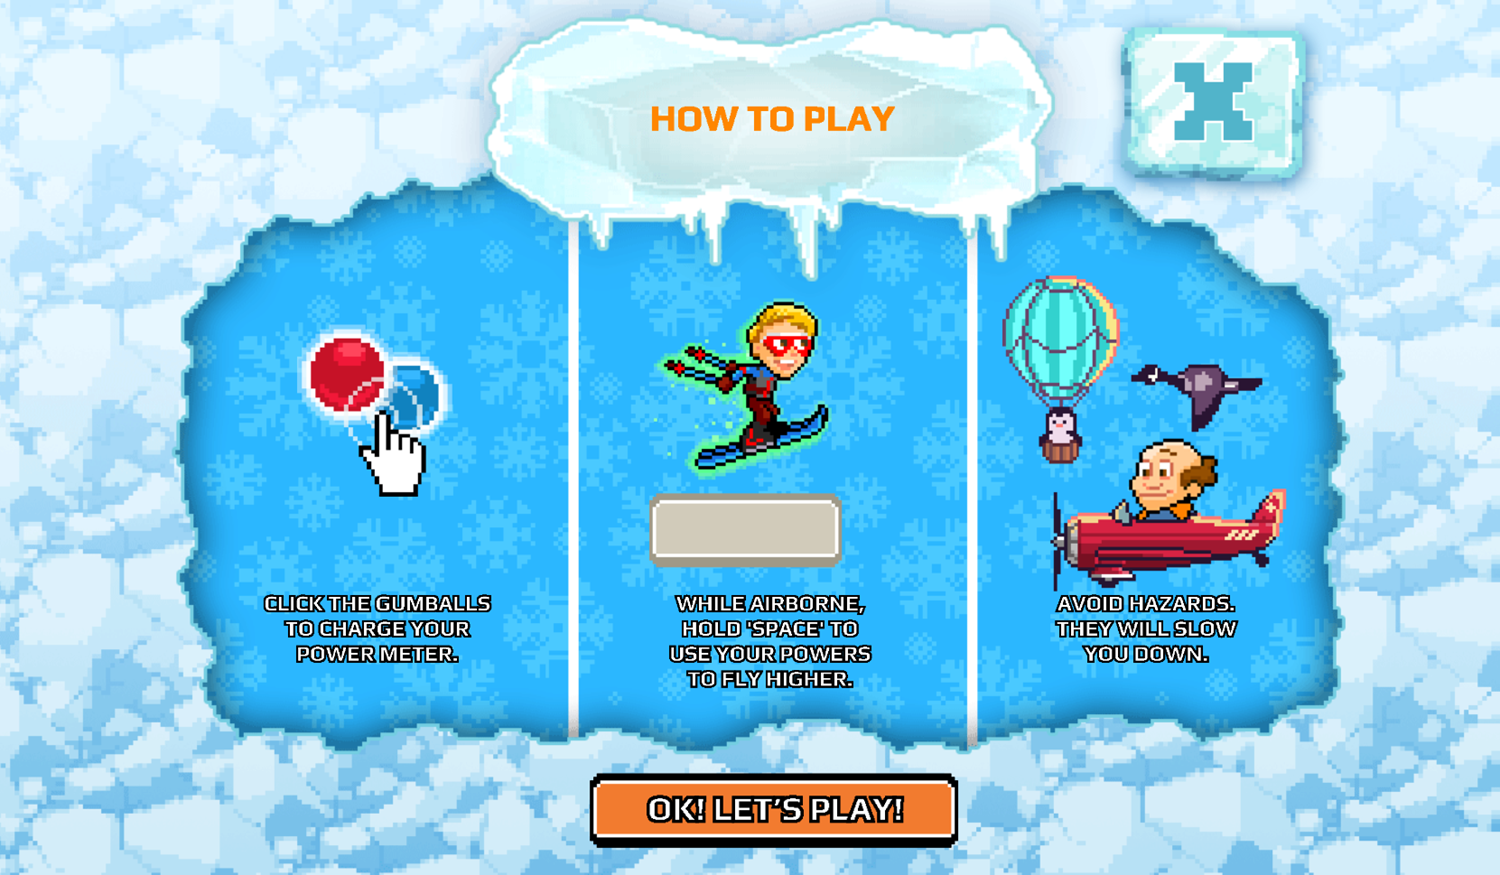 Nick Champions of the Chill 2 Game Light Speed Skiing How To Play Screenshot.